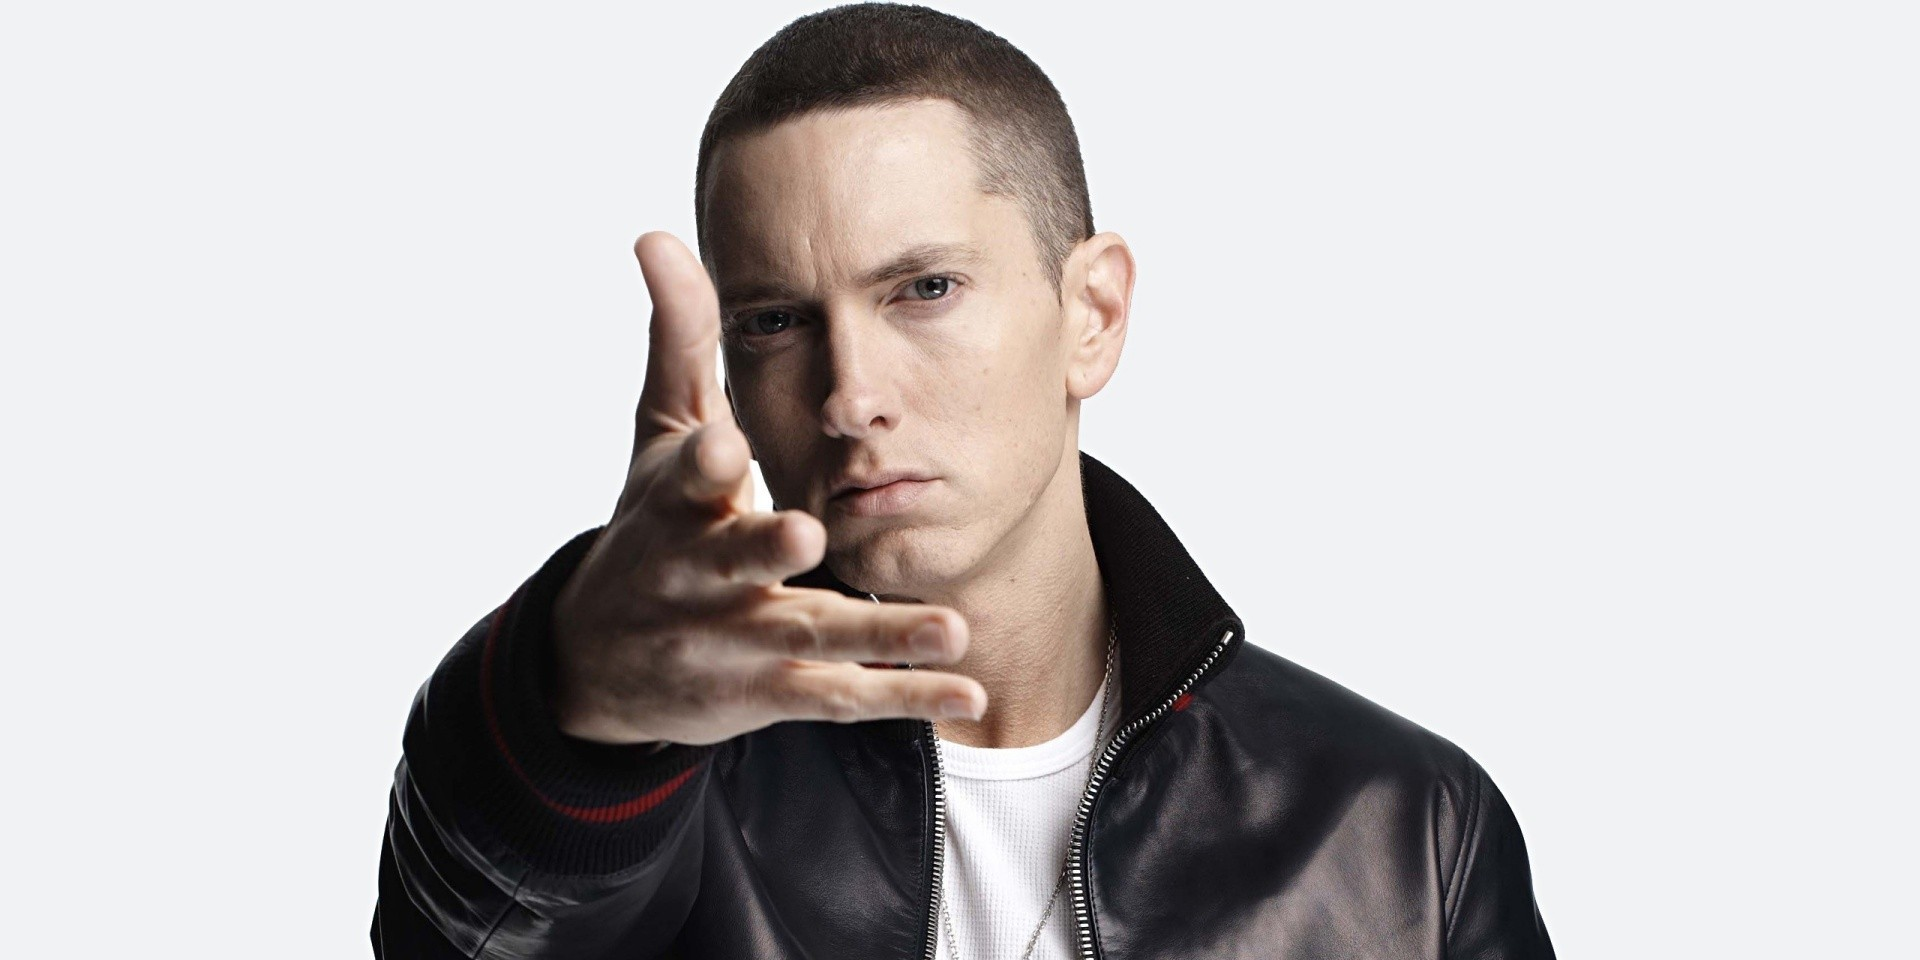 Eminem outsold everyone in 2018 to earn top spot in album sales